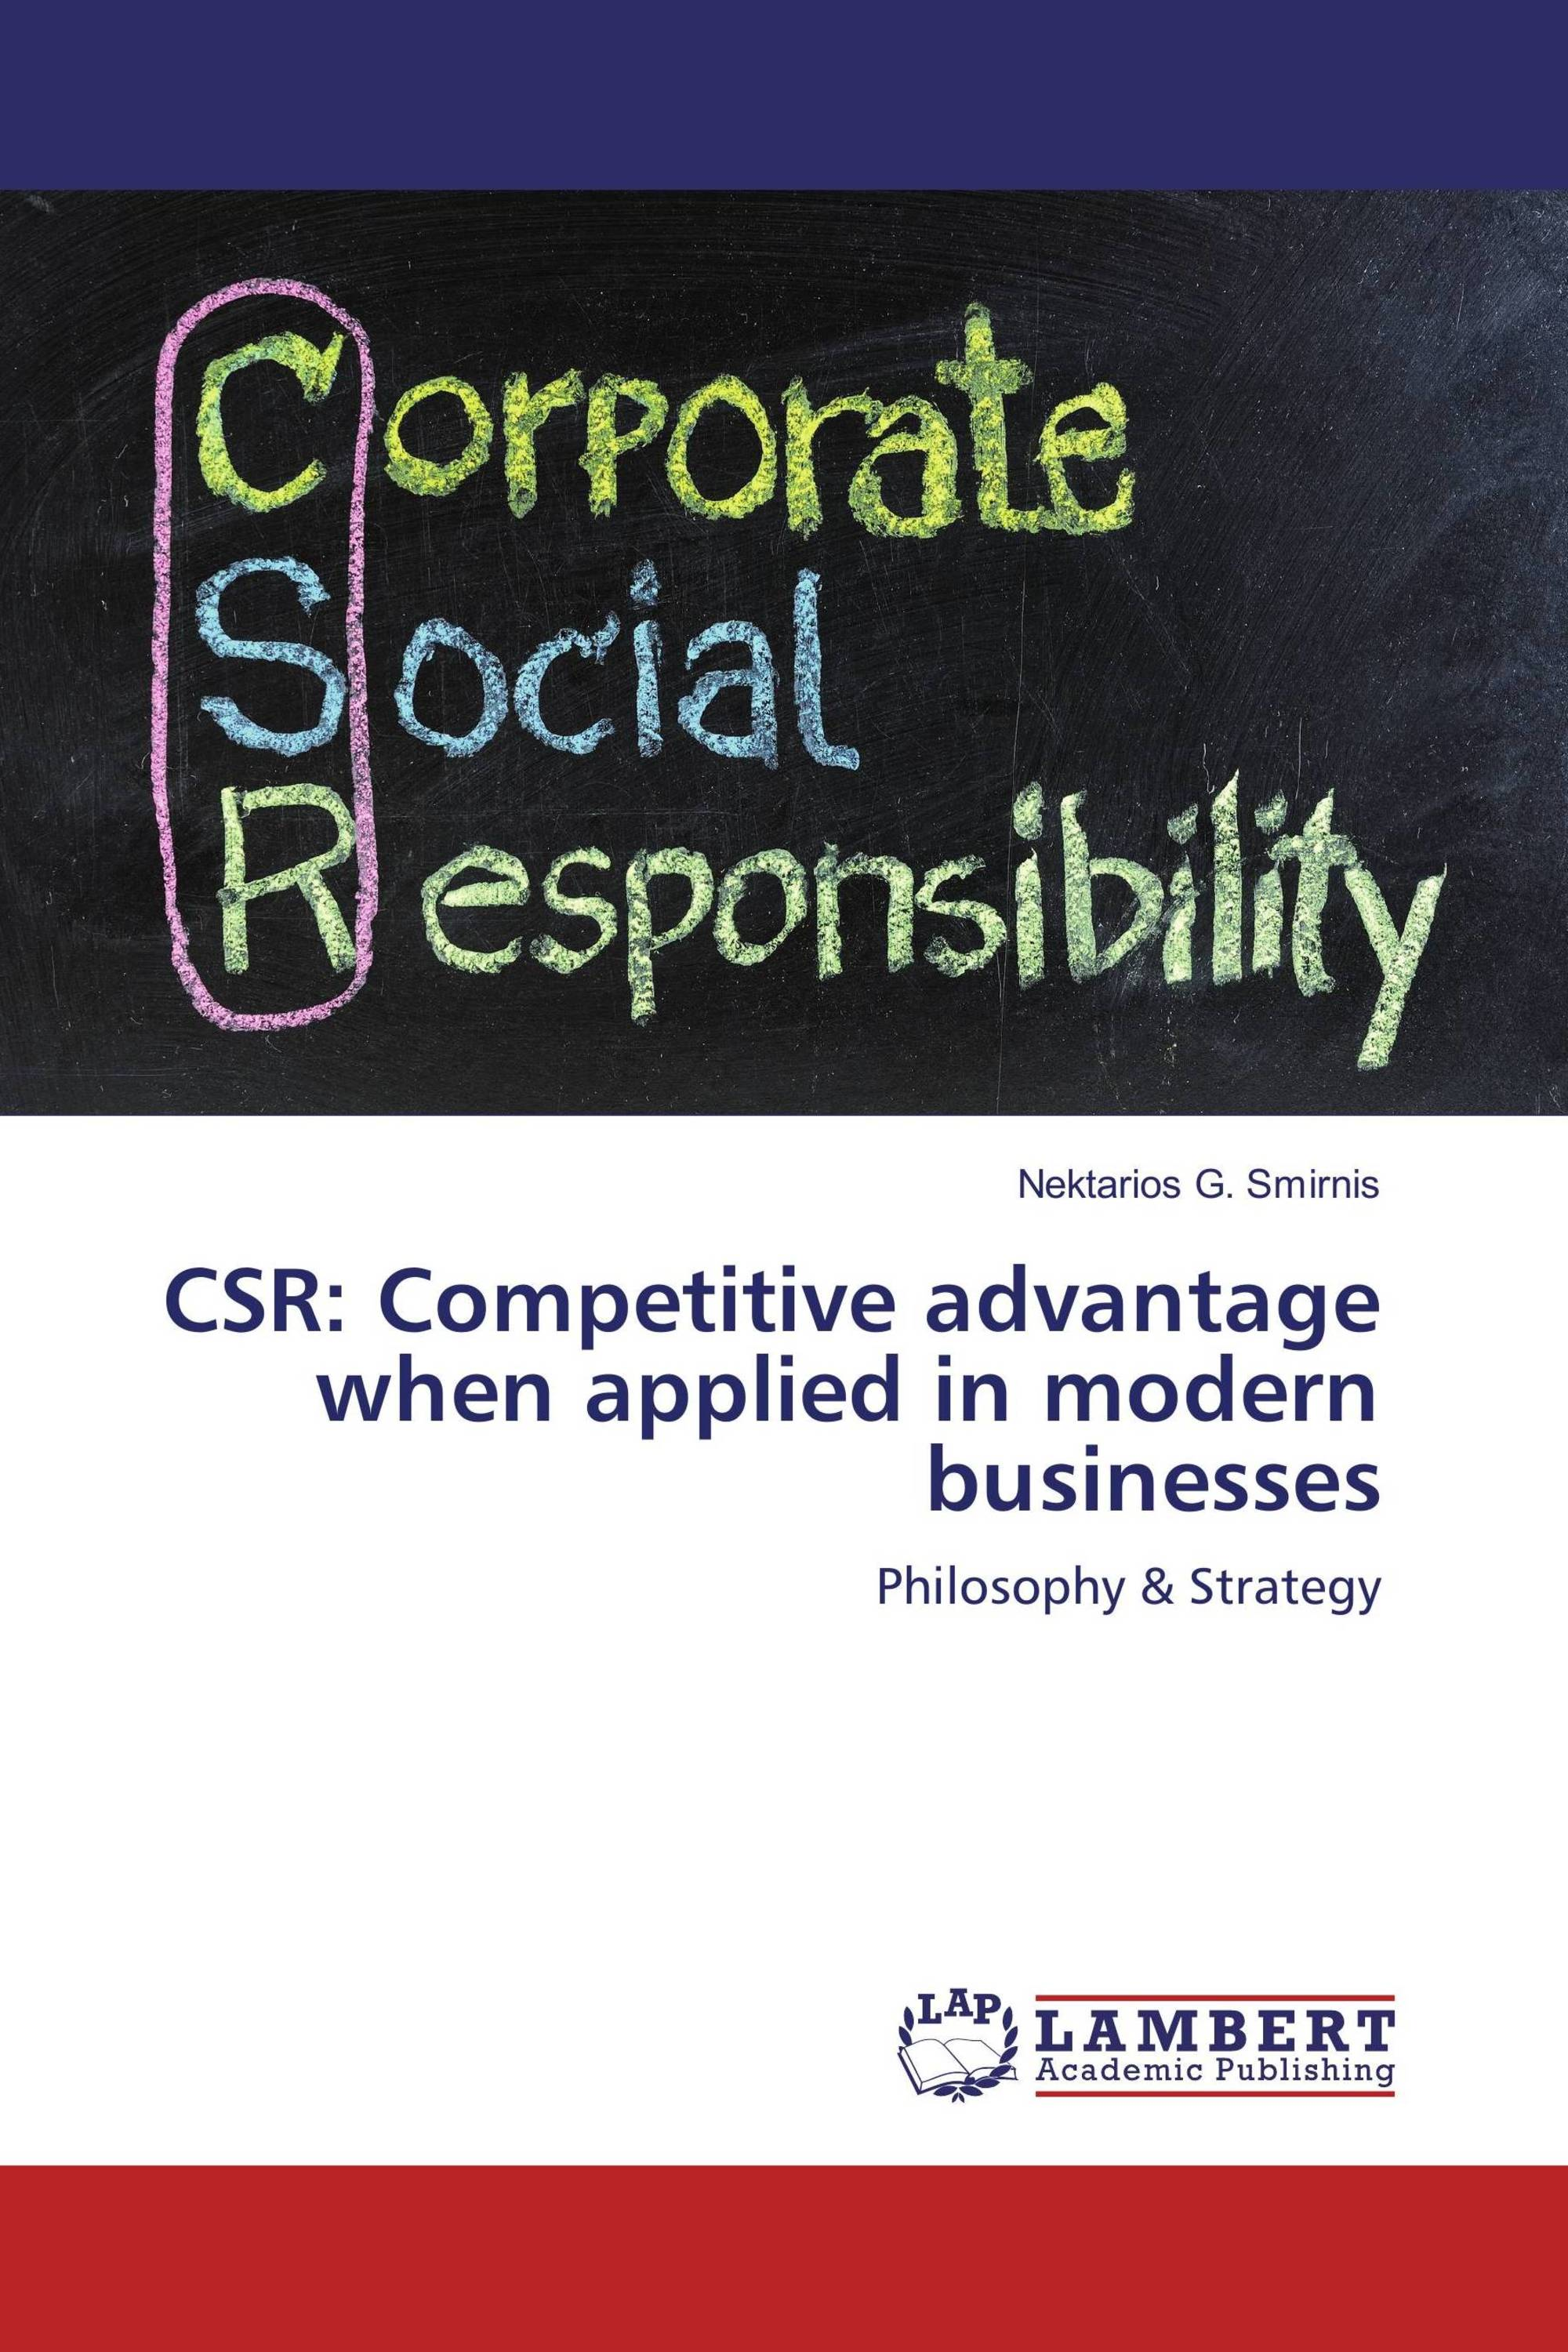 competitive advantage csr The competitive advantage of corporate social responsibility 91 focus media attention on issues that mobilize a powerful response from consumers.